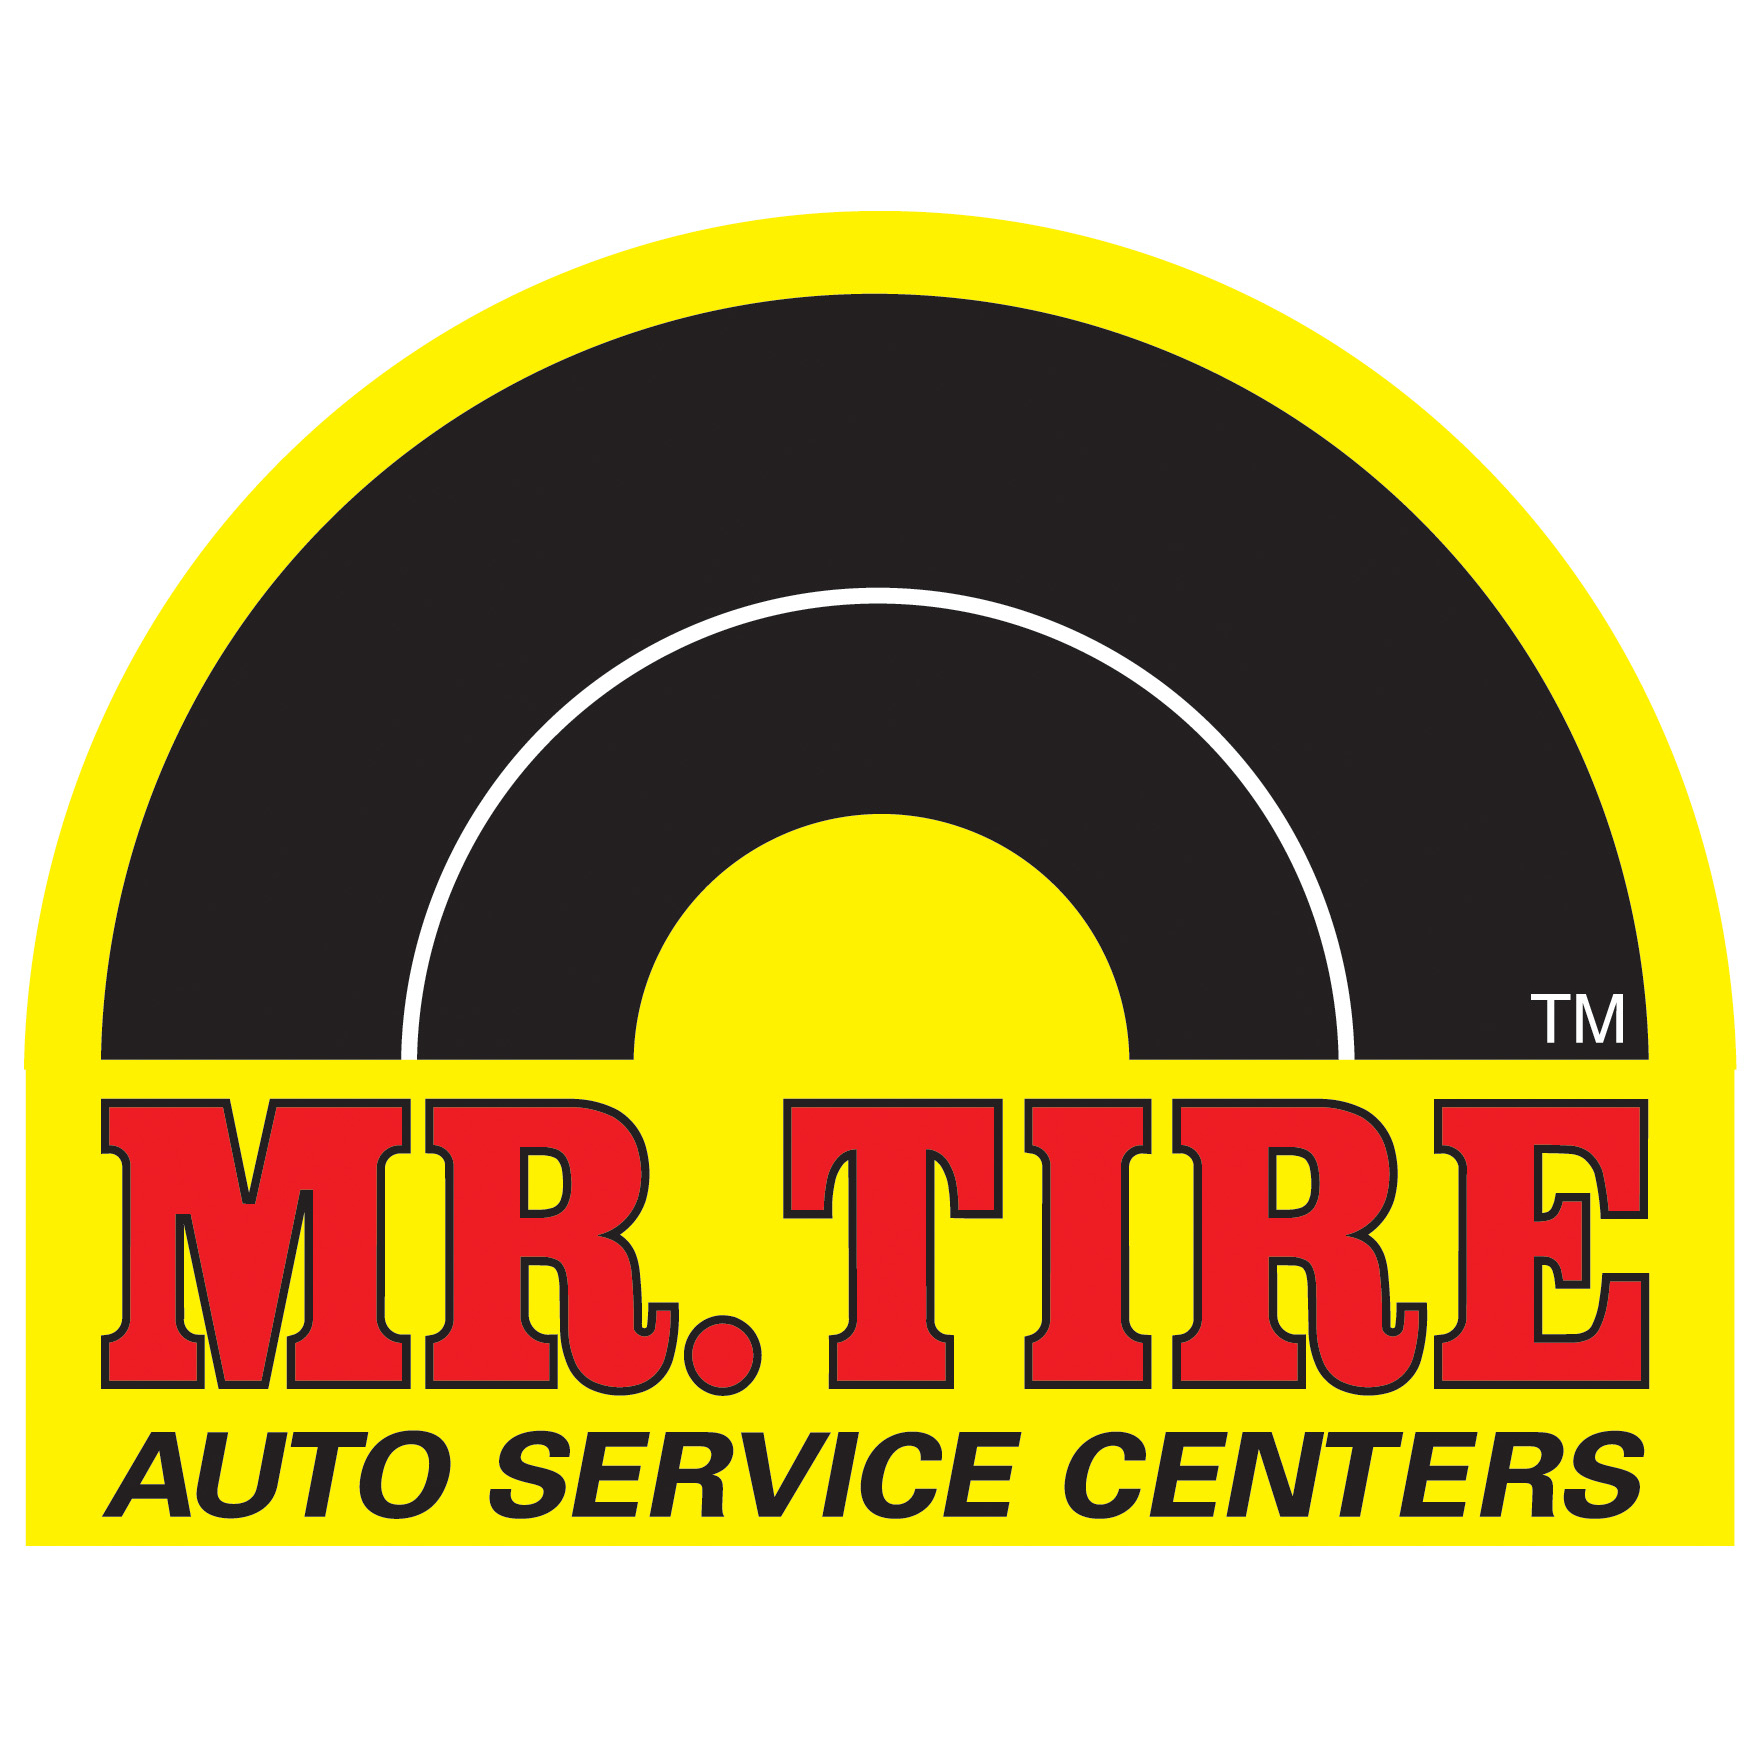 Mr Tire Auto Service Centers - Berea, OH 44017 - (440)234-4990 | ShowMeLocal.com